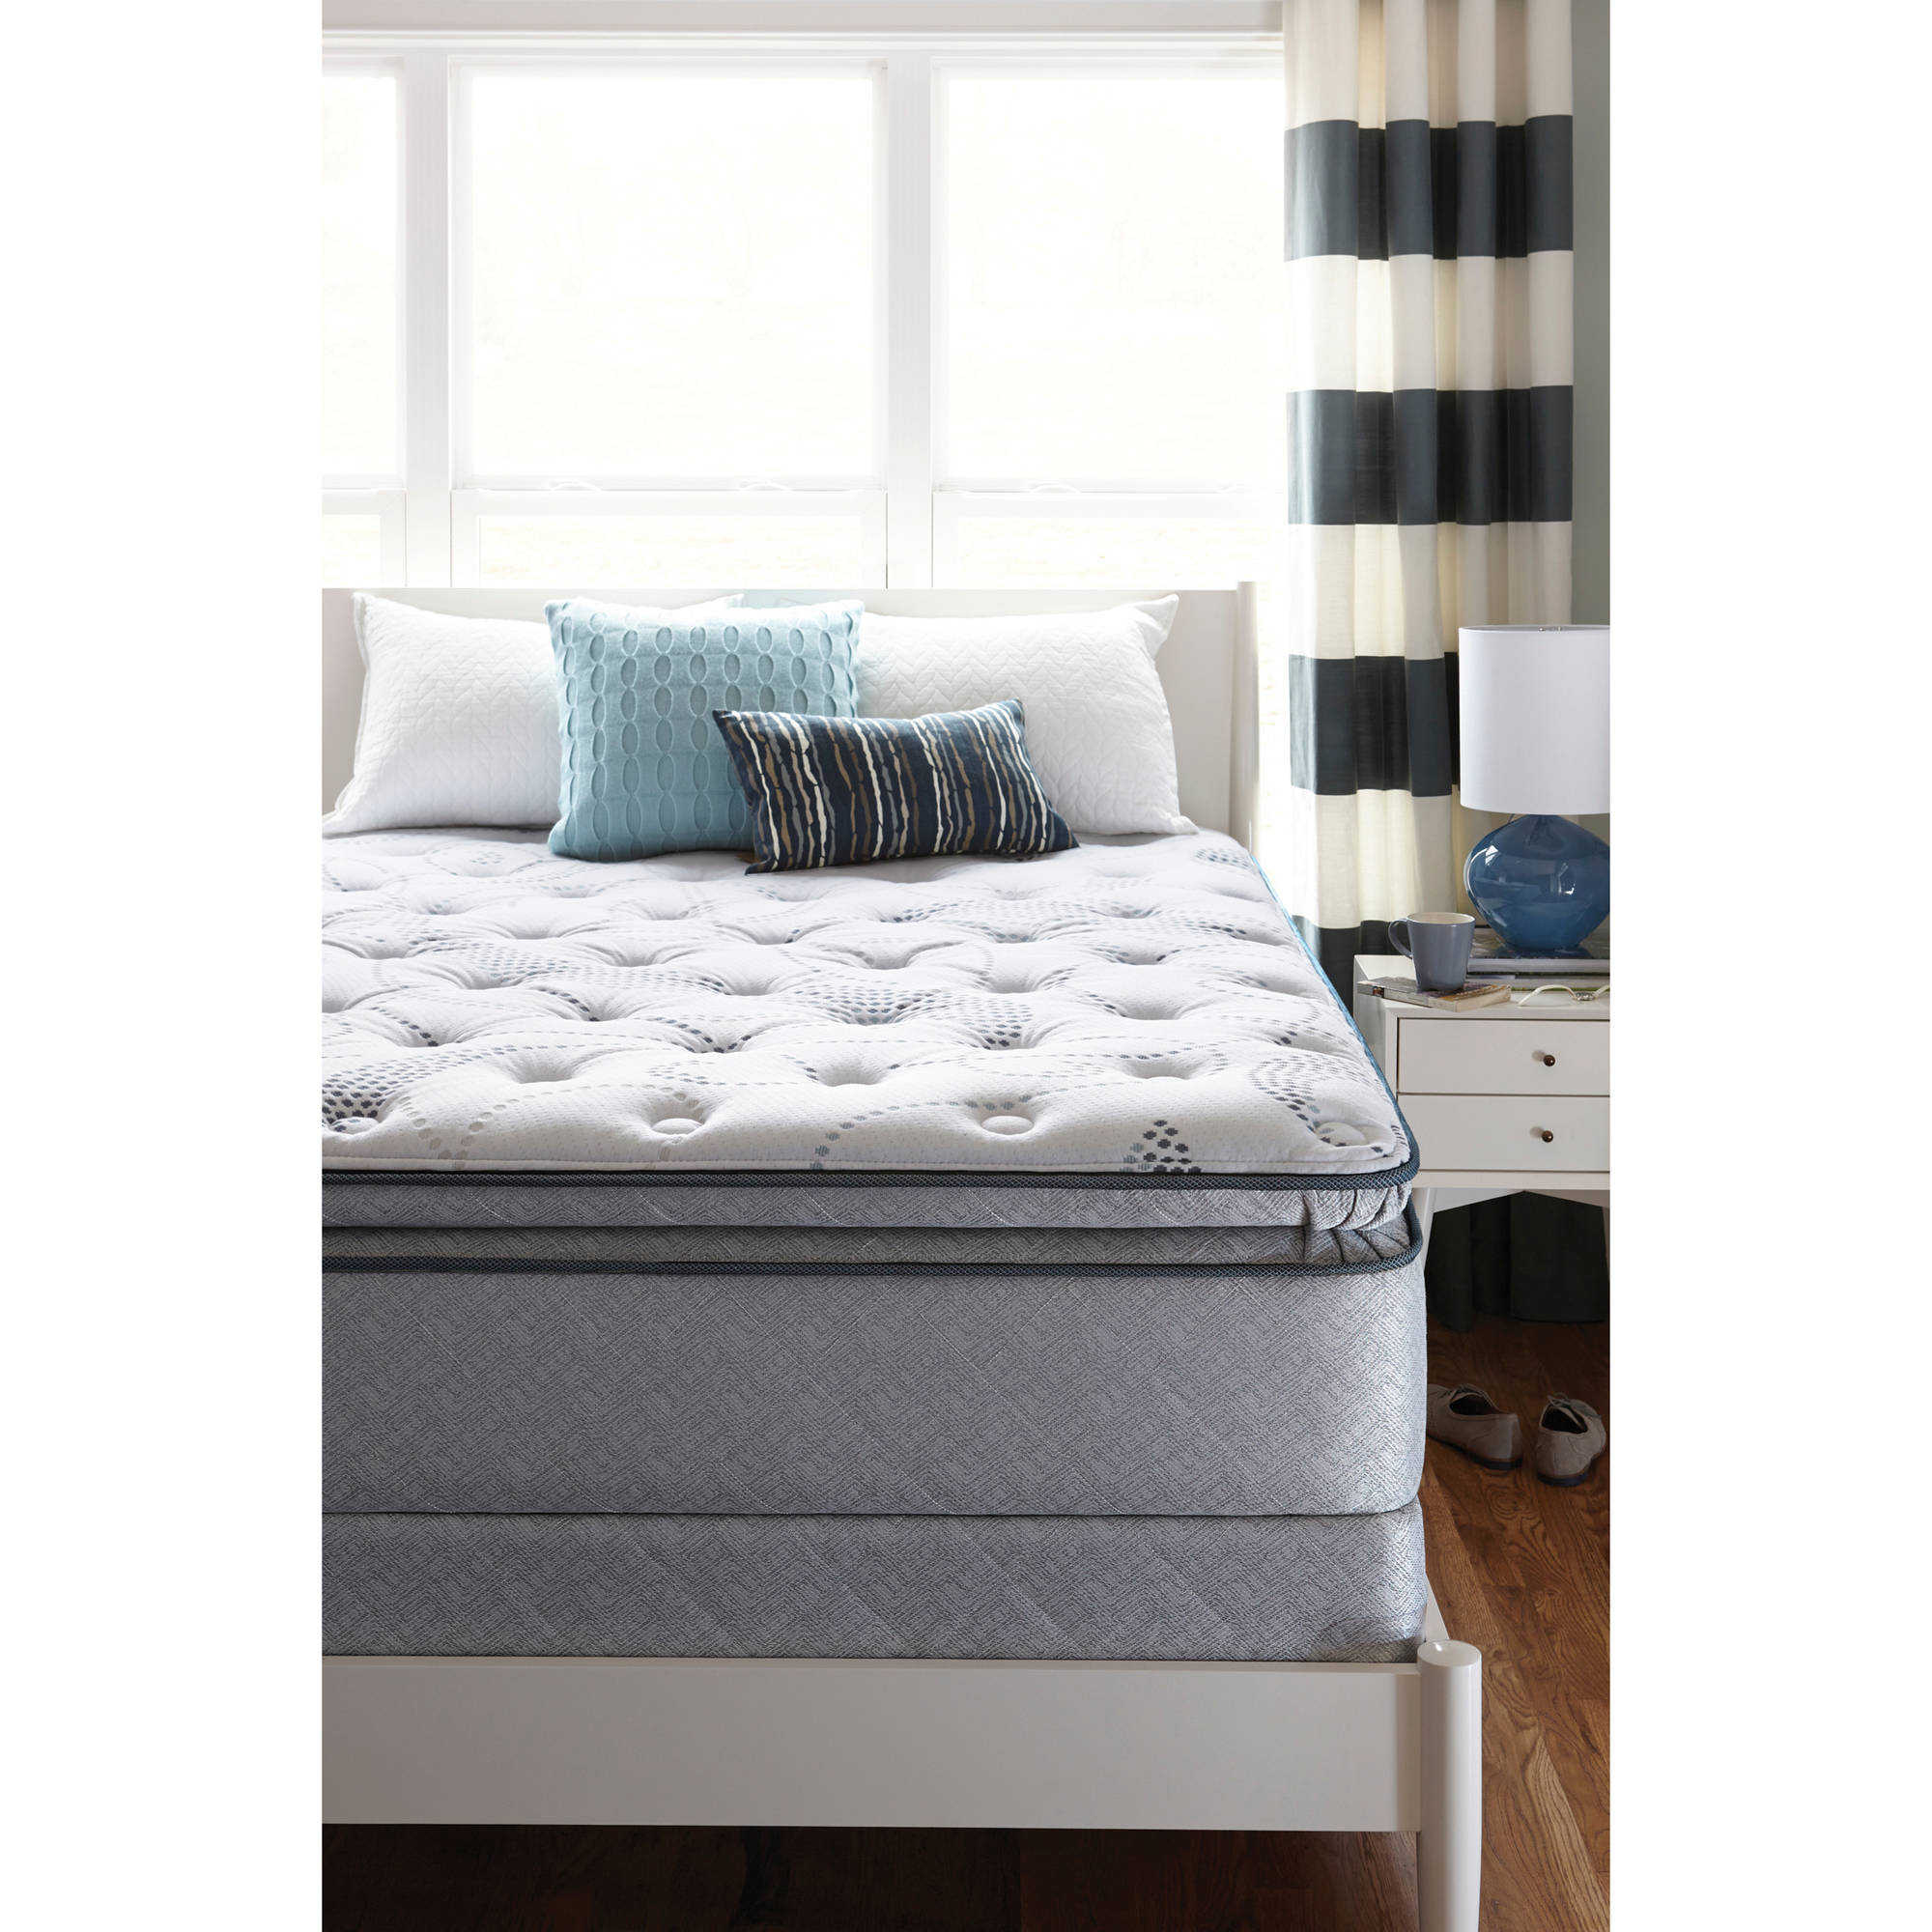 reviews size sealy euro charter pillowtop queen house a set pillow edgemont cliffport cushion mattress plus top plush